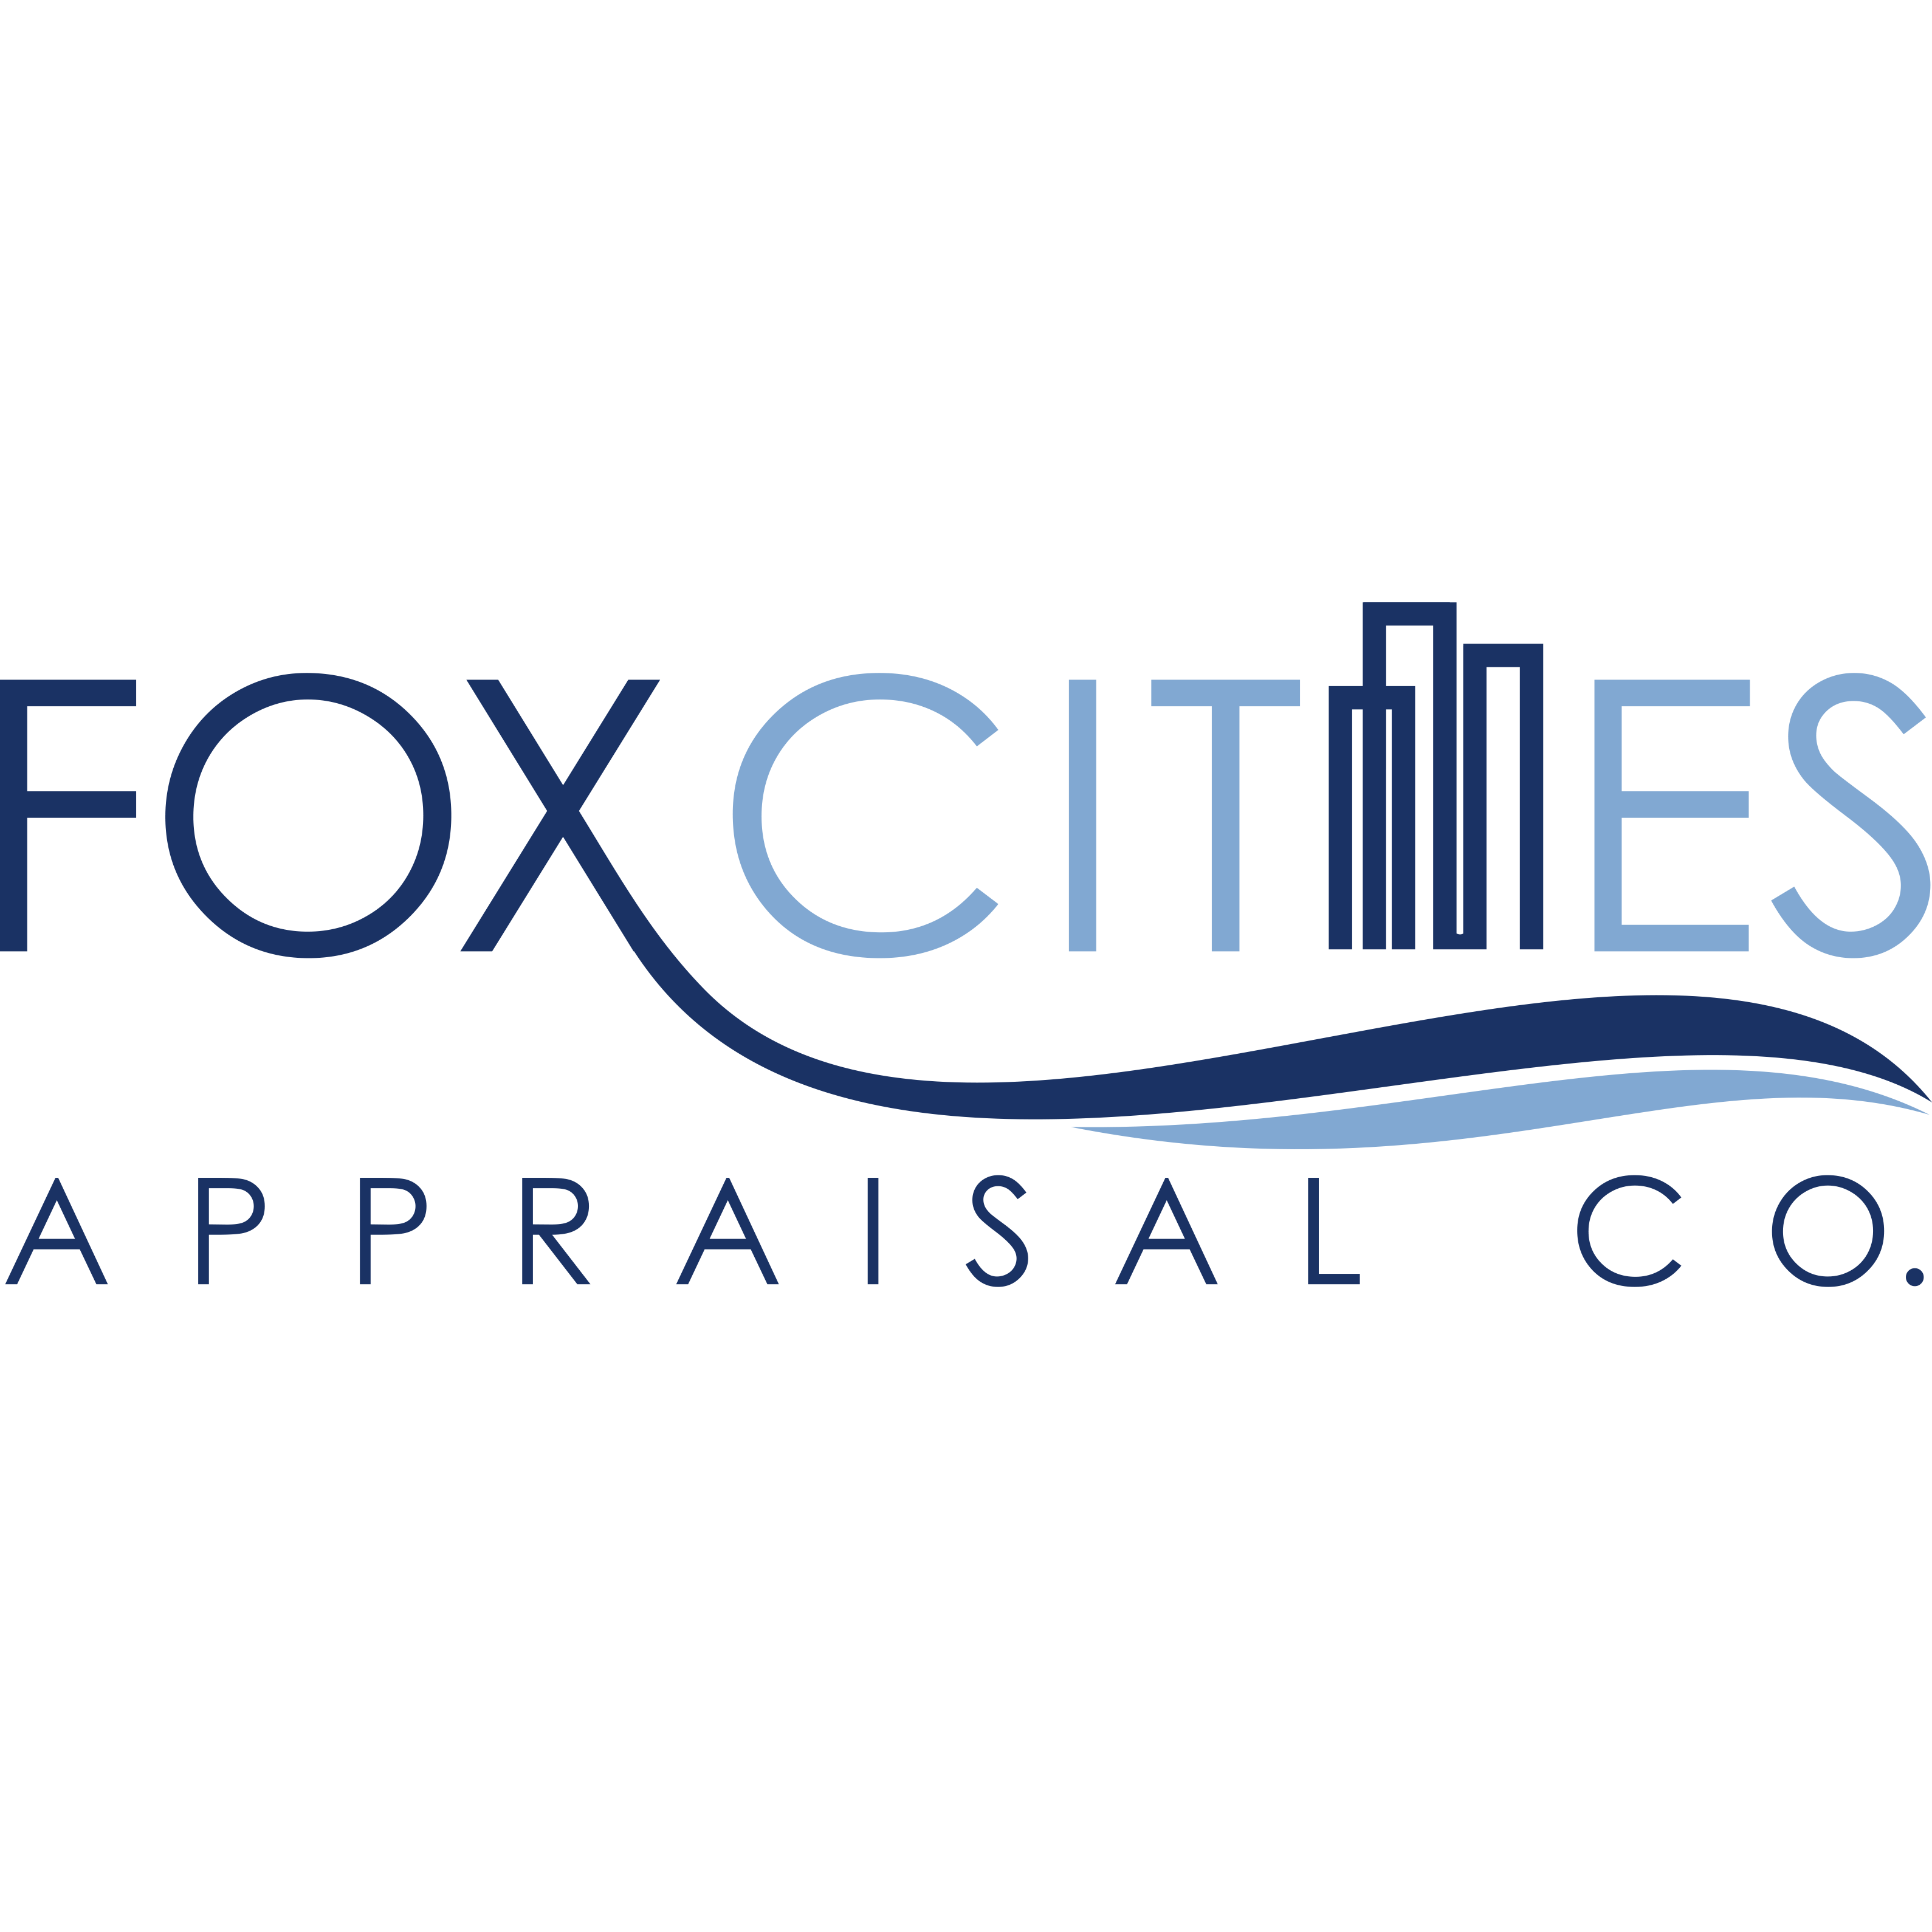 Fox Cities Appraisal Company - Appleton, WI - Real Estate Appraisers